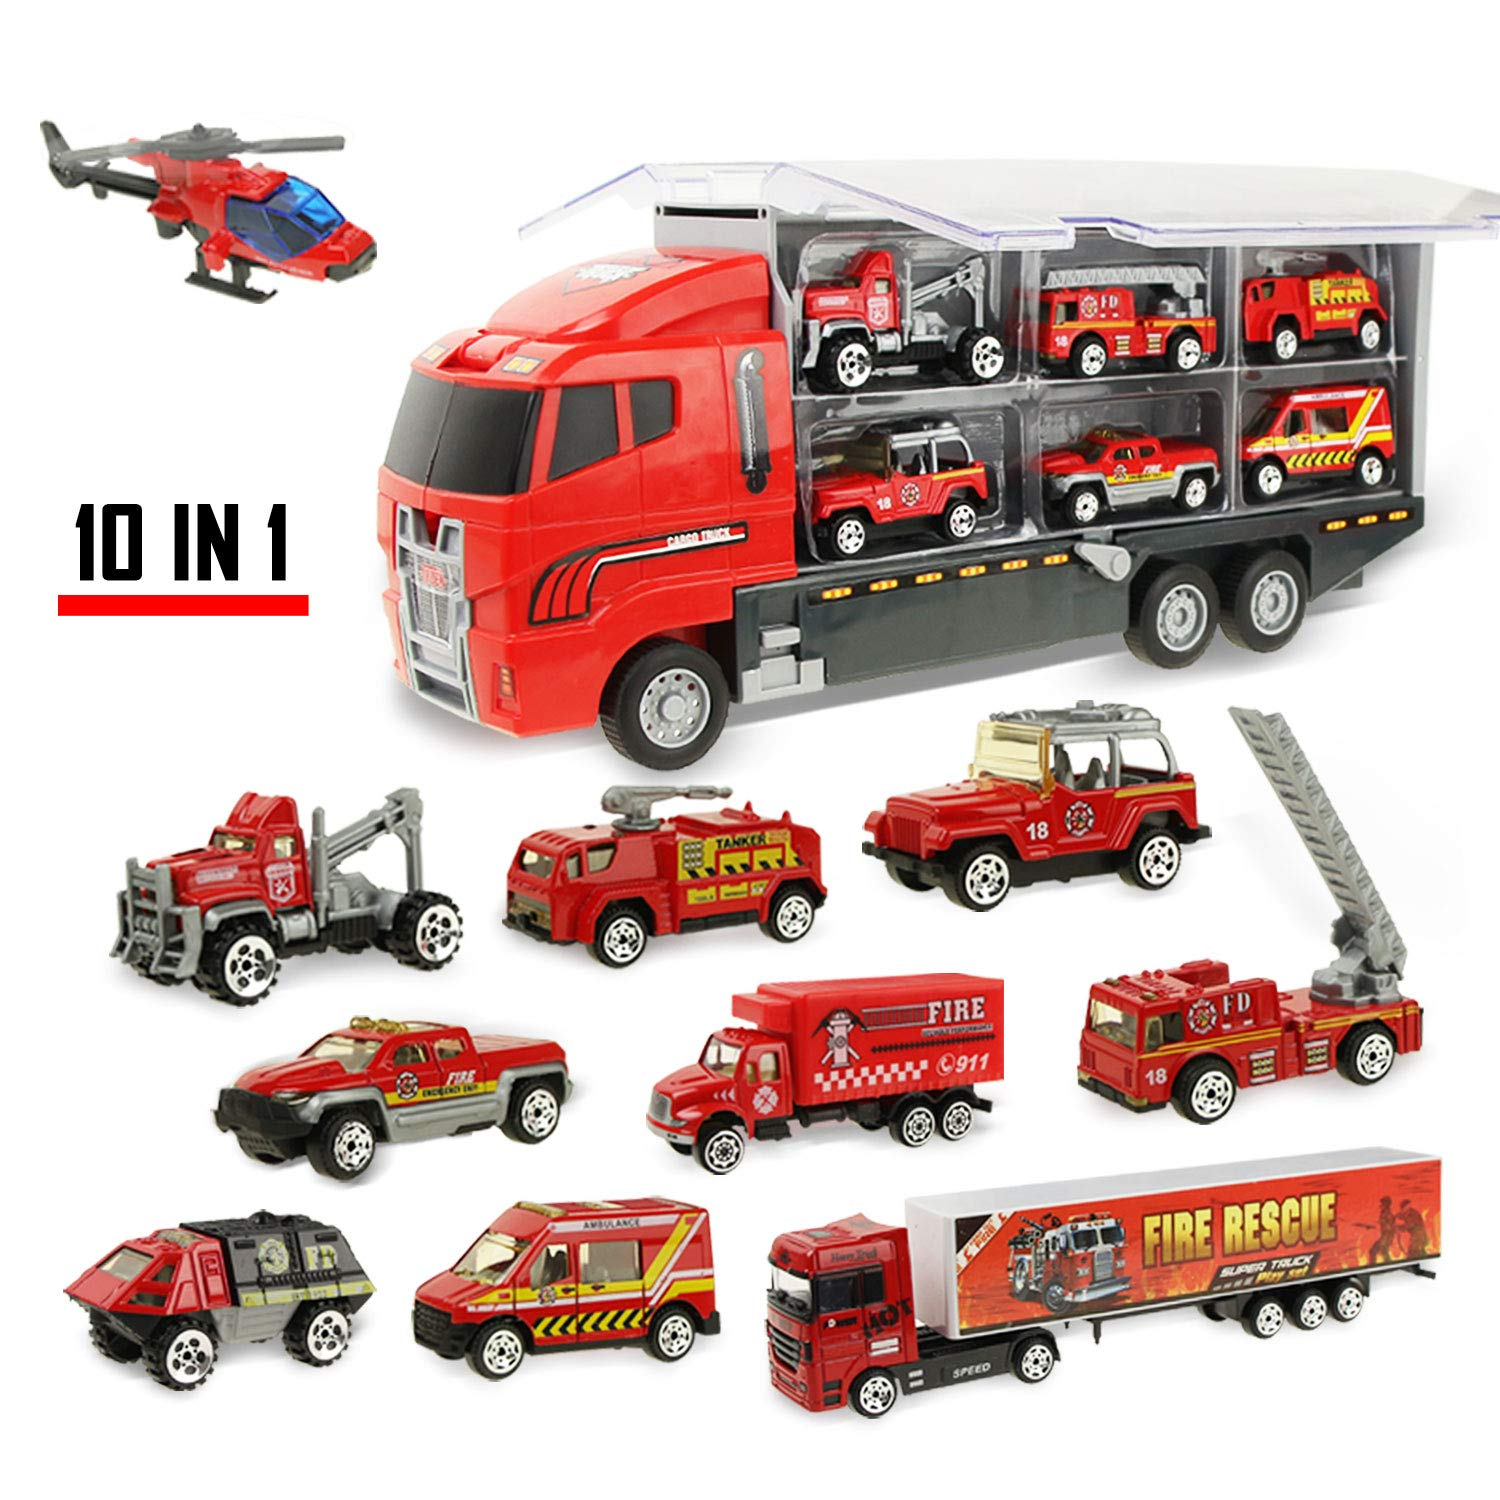 Coolplay 10 in 1 Die-cast Fire Engine Vehicle Mini Rescue Emergency Fire Truck Toy Set in Carrier Truck